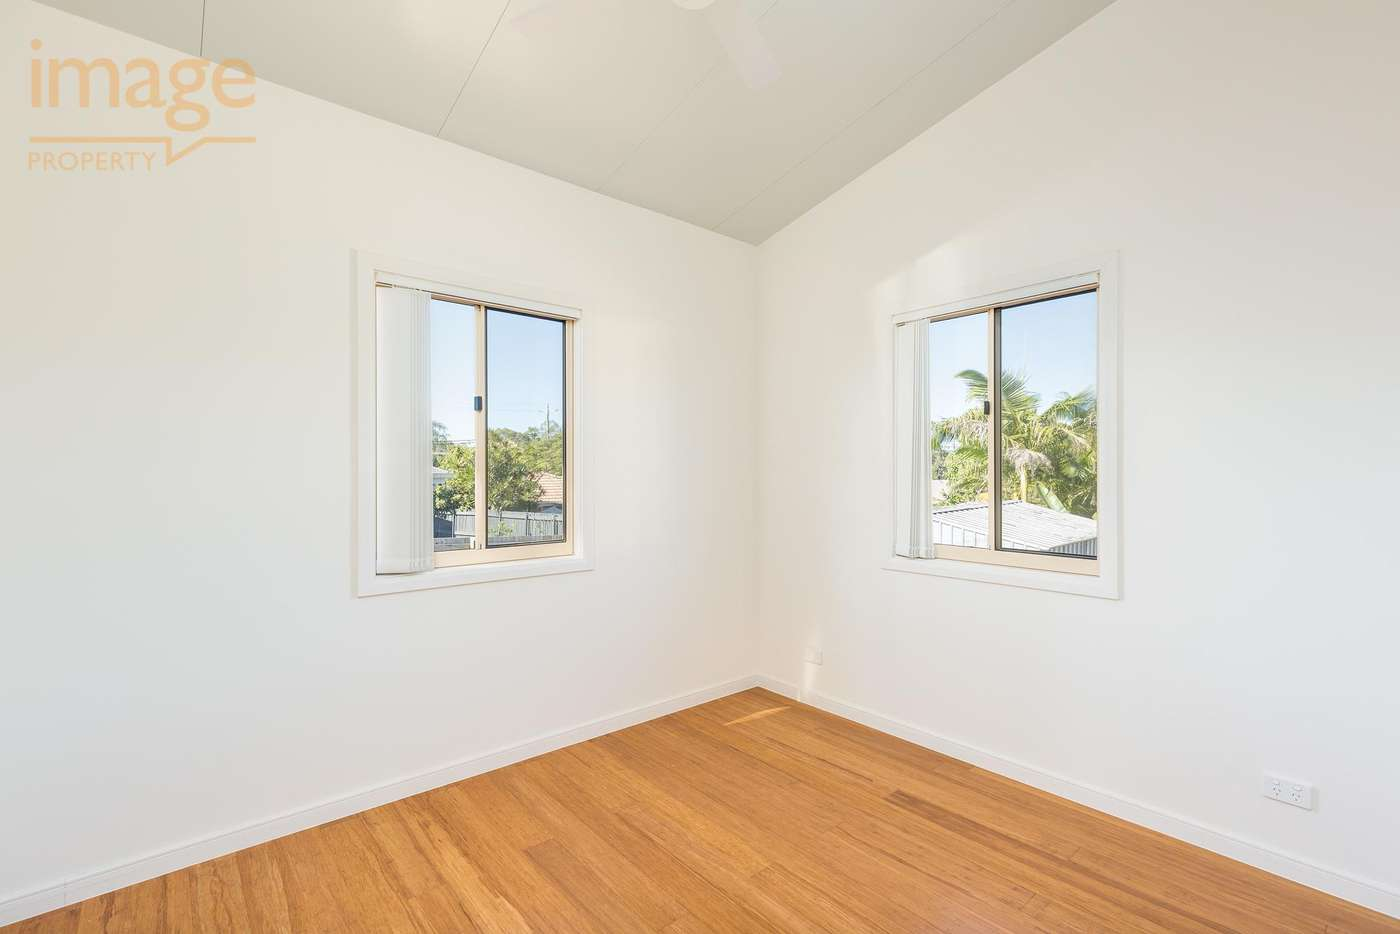 Seventh view of Homely house listing, 17A Emerald Drive, Regents Park QLD 4118